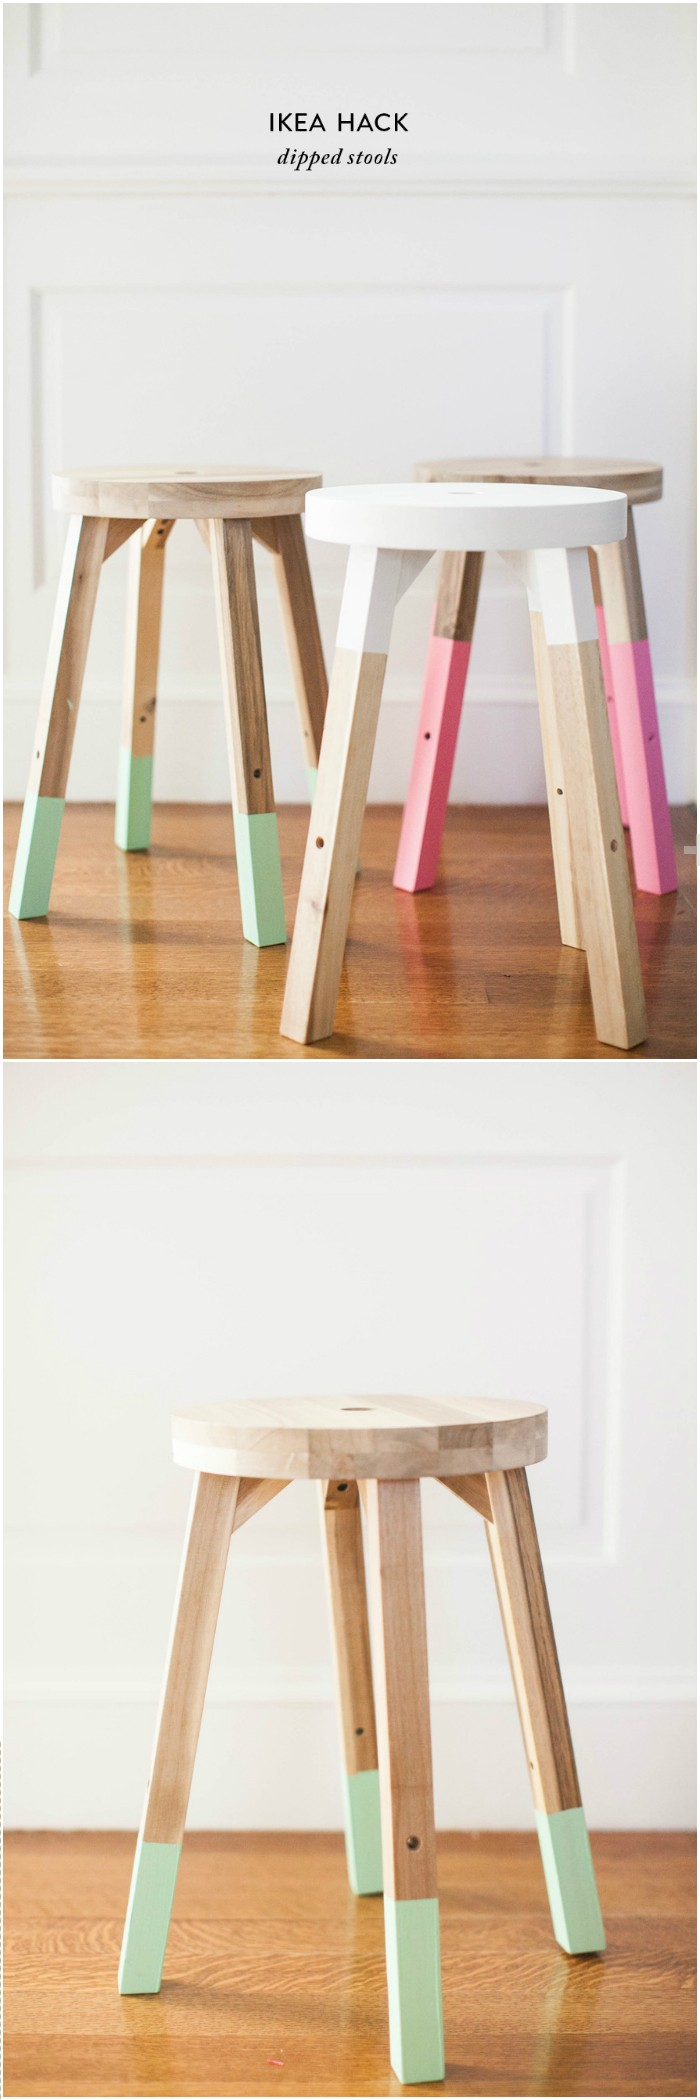 IKEA Hack Dipped Stools IKEA Hacks For Your Home Decor